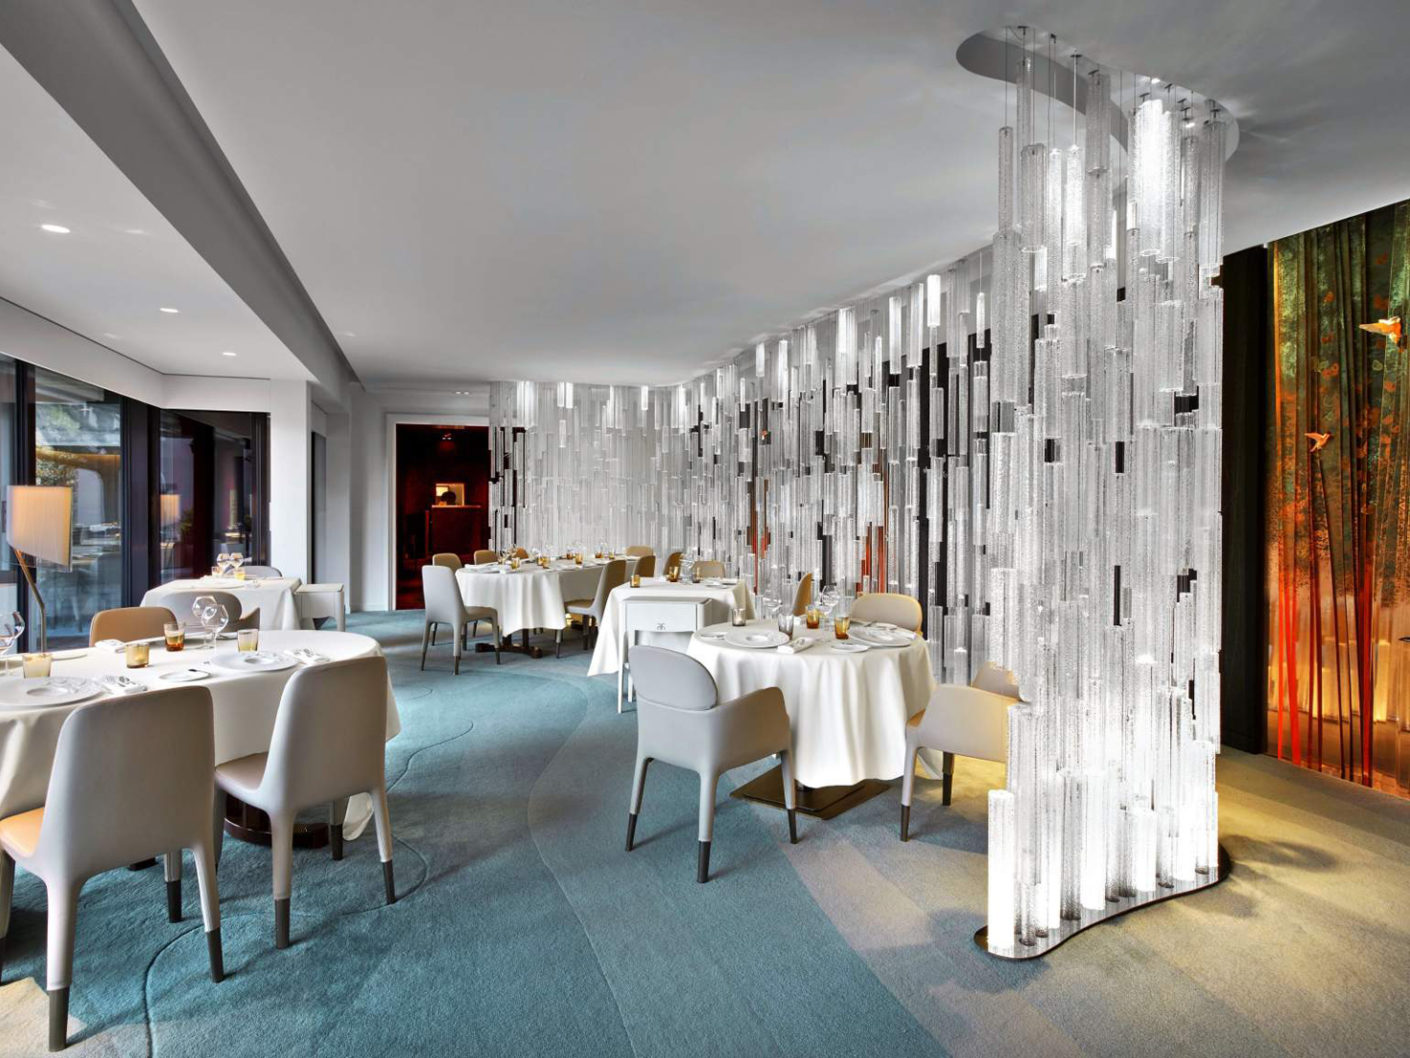 In an attempt to make guests enjoy the view both of the plate and the room, the architectural firm Jouin Manku has divided the restaurant into four areas and designed themed worlds.